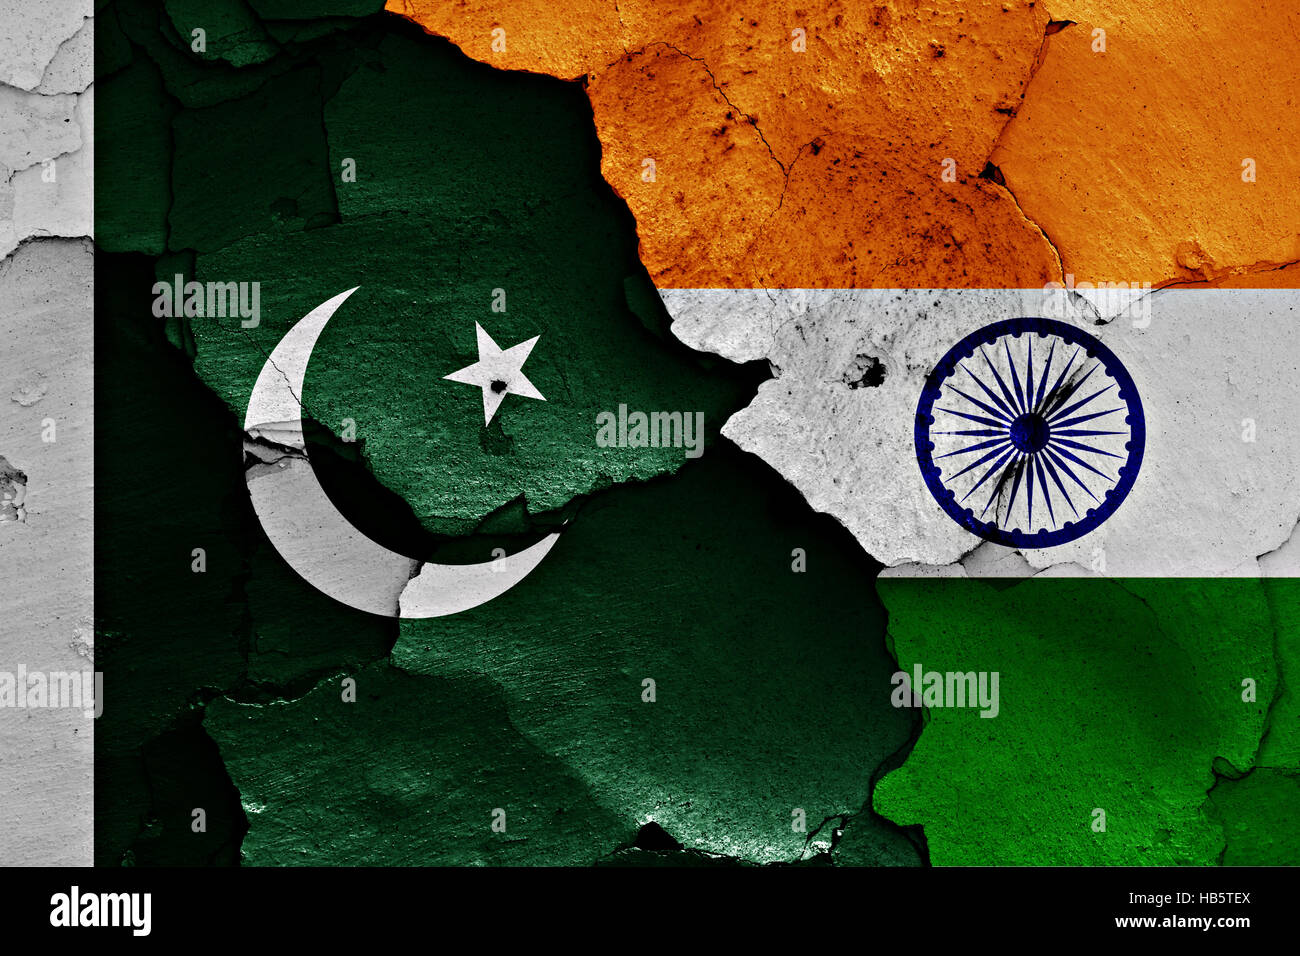 flags of Pakistan and India painted on cracked wall - Stock Image